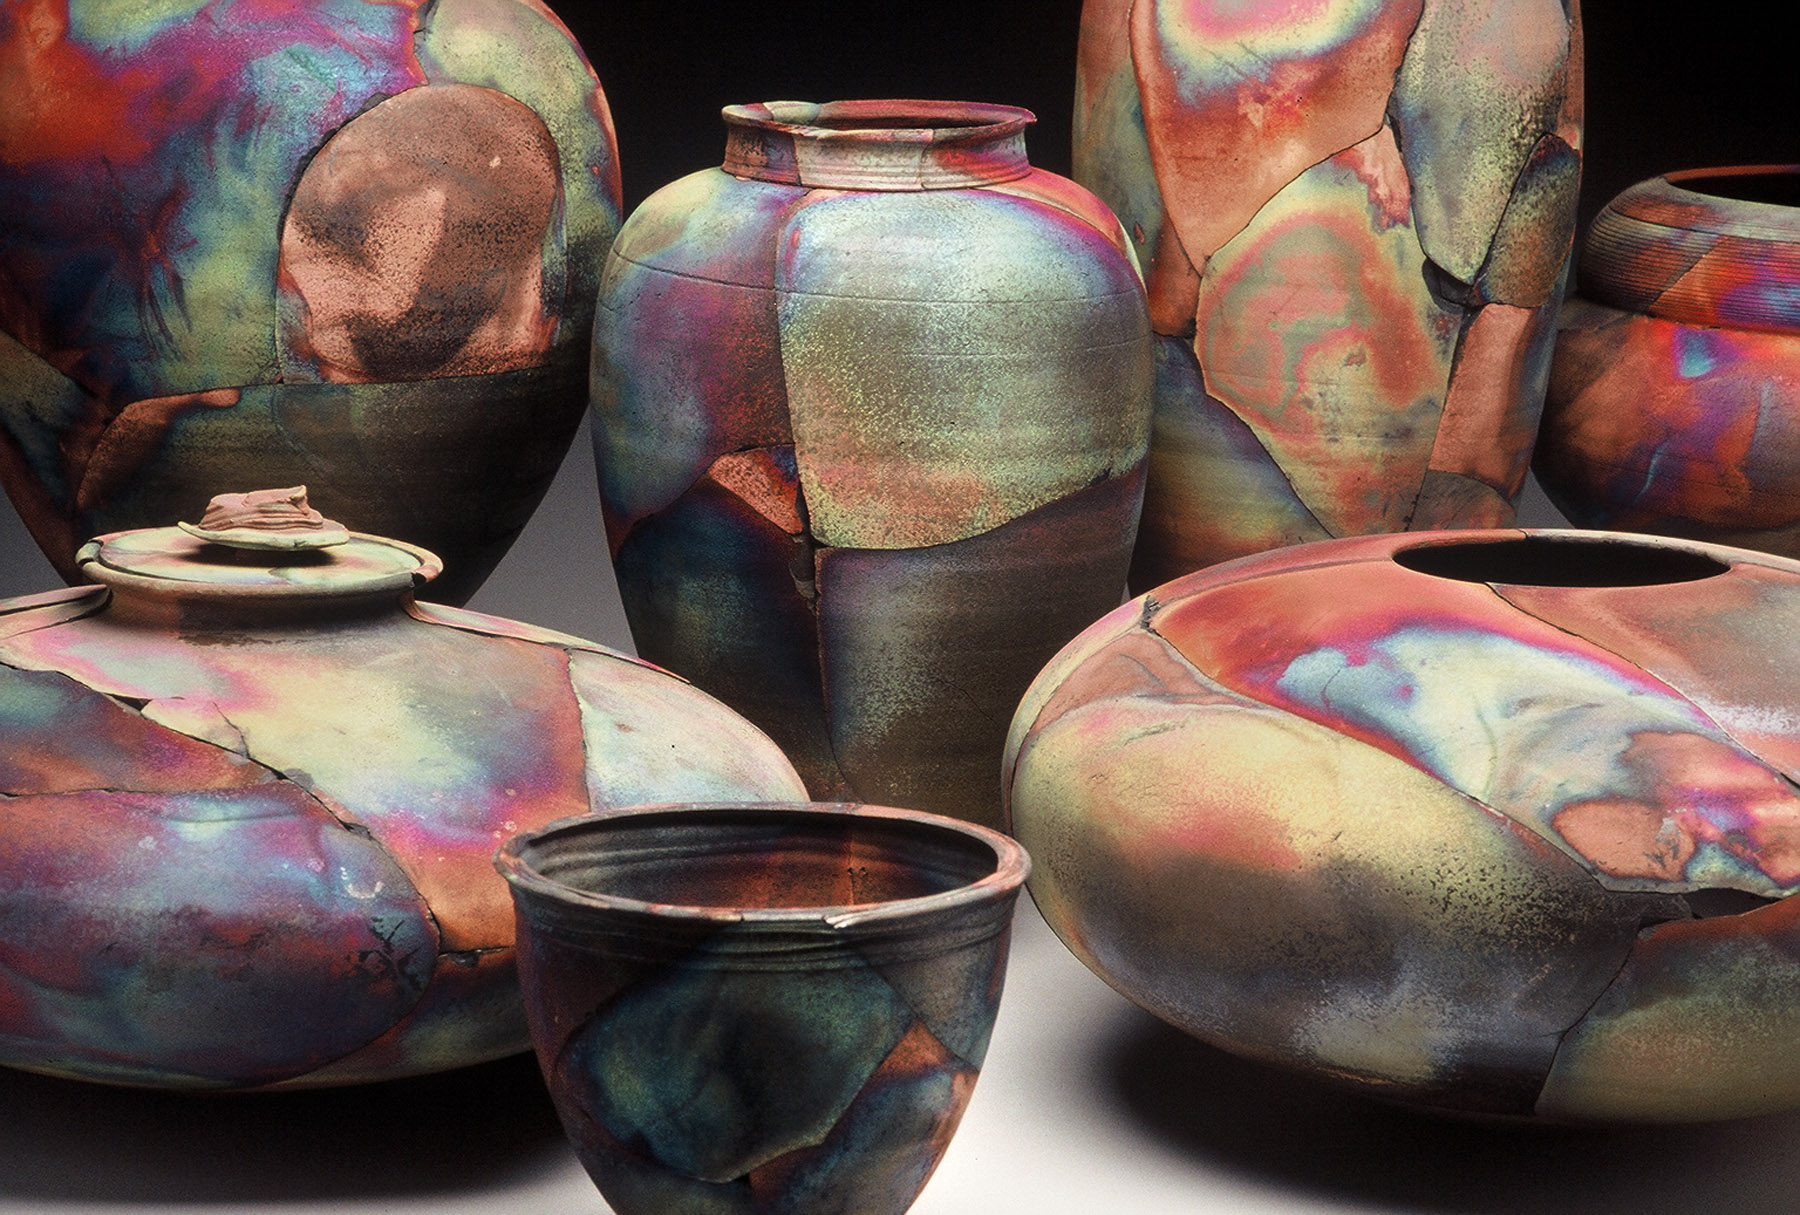 ceramics craft and art photography by Tim Barnwell